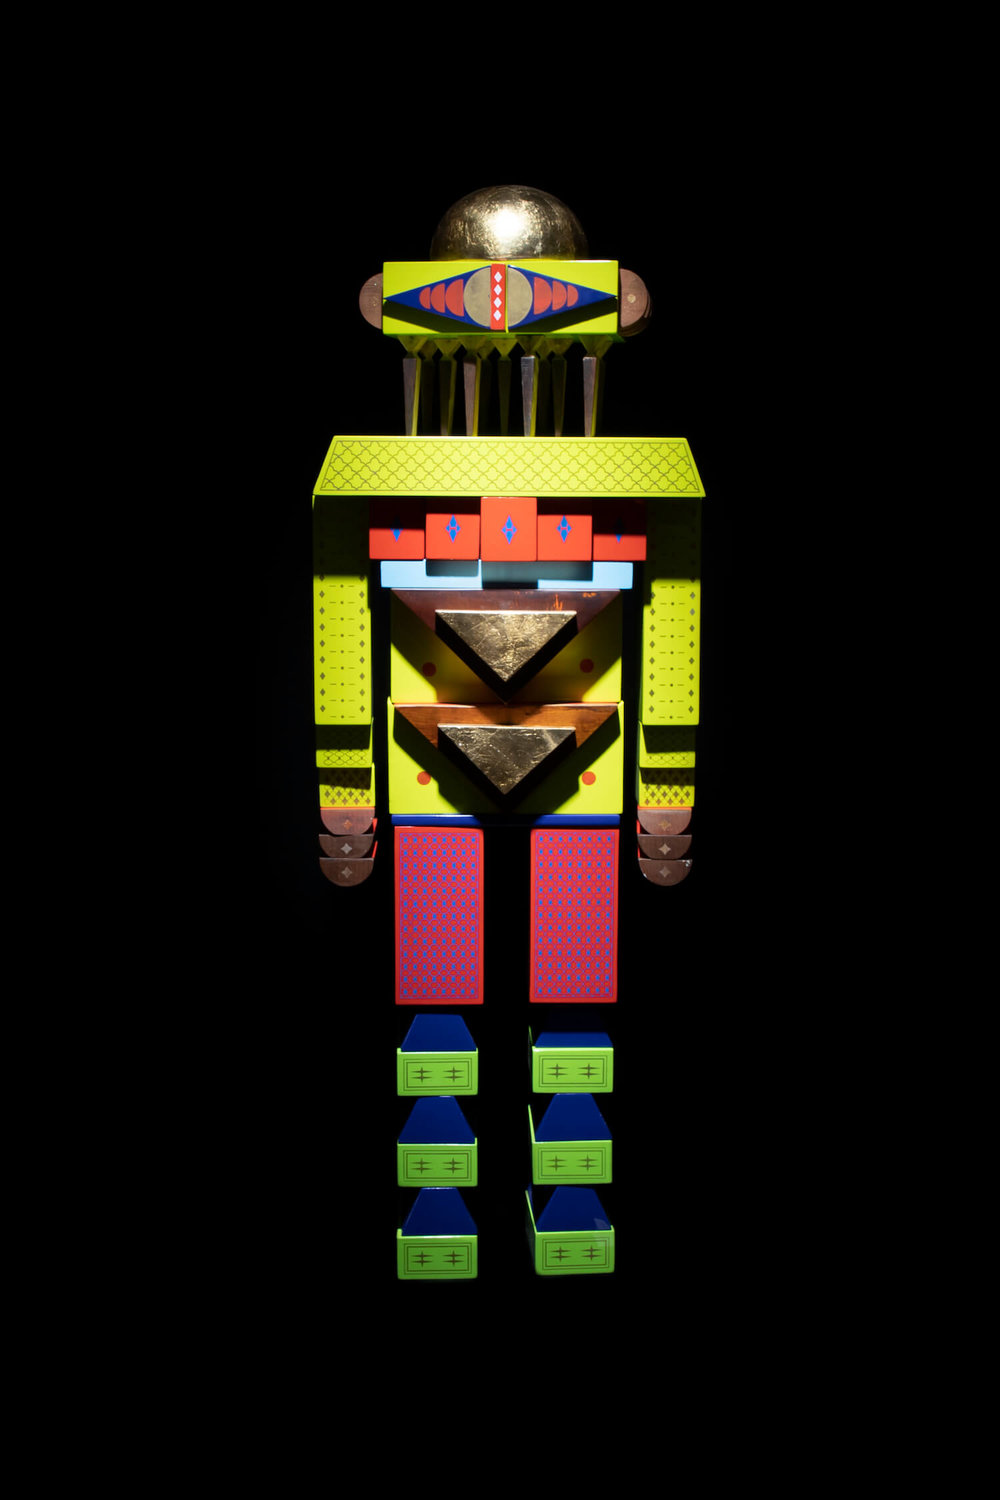 Design by Reborn, 'ilo the 5 headed synthetic dreamer', 2019. Image courtesy of Vin Gallery.